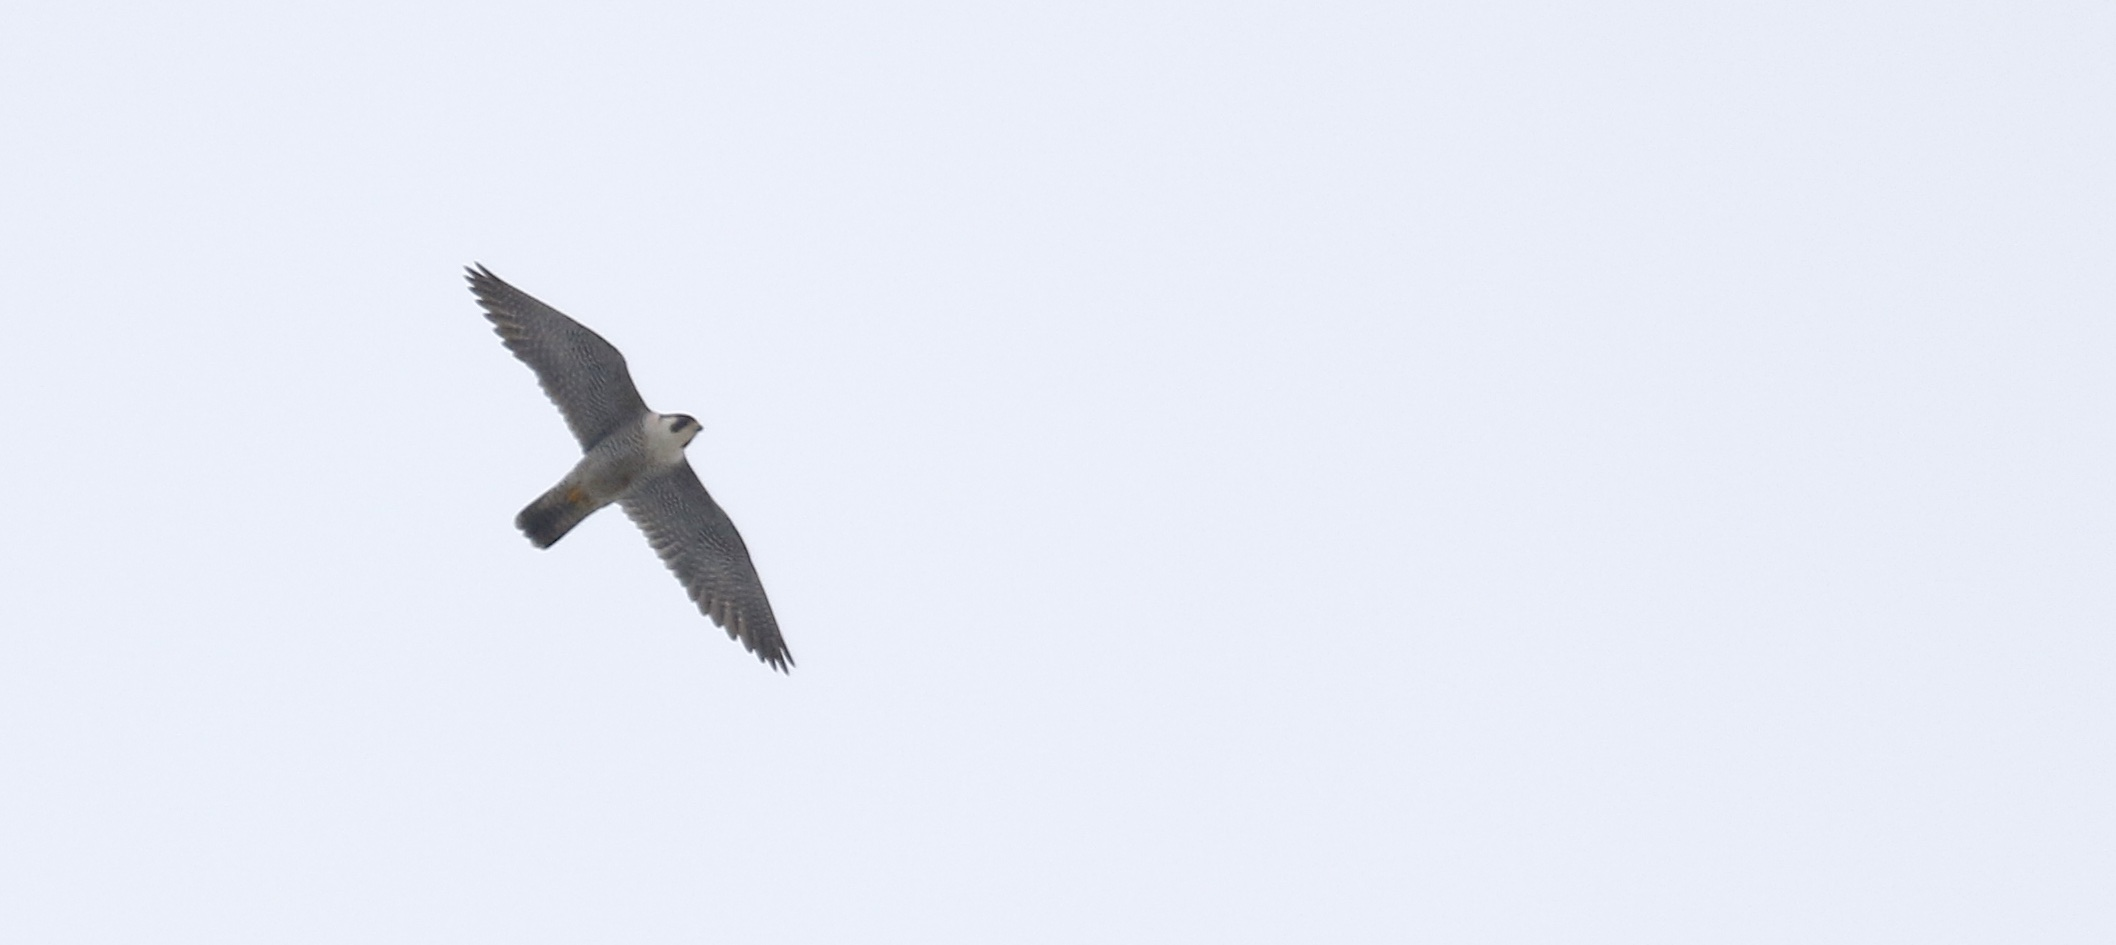 ~It's a lousy photo, but I had to include it because I was so excited to see this Peregrine Falcon doing its thing at the Wallkill River NWR, 3/21/15.~